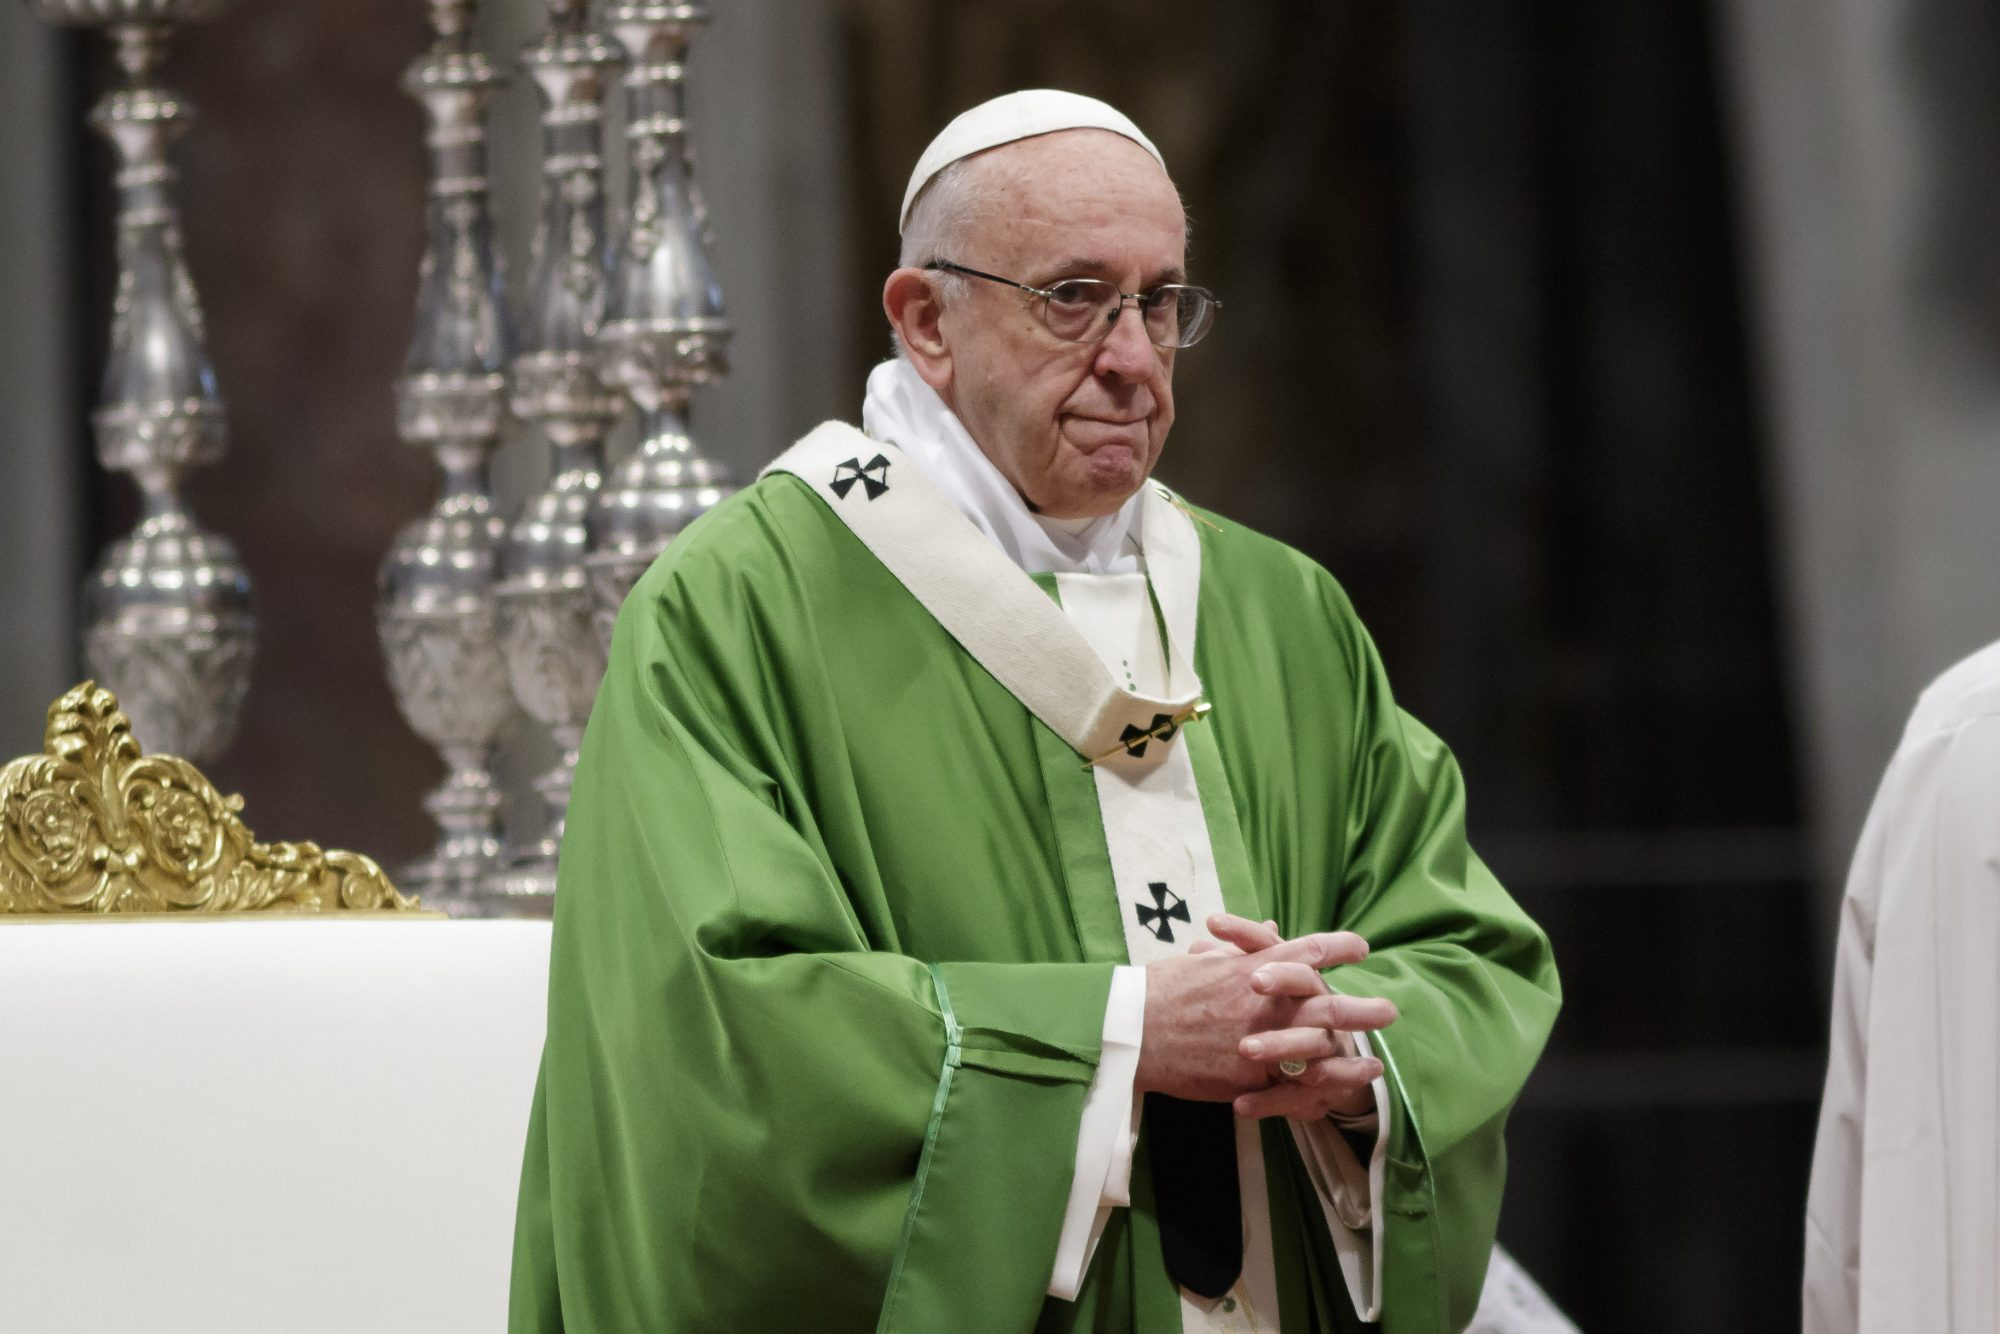 Pope Francis celebrates the World Day of Migrants and